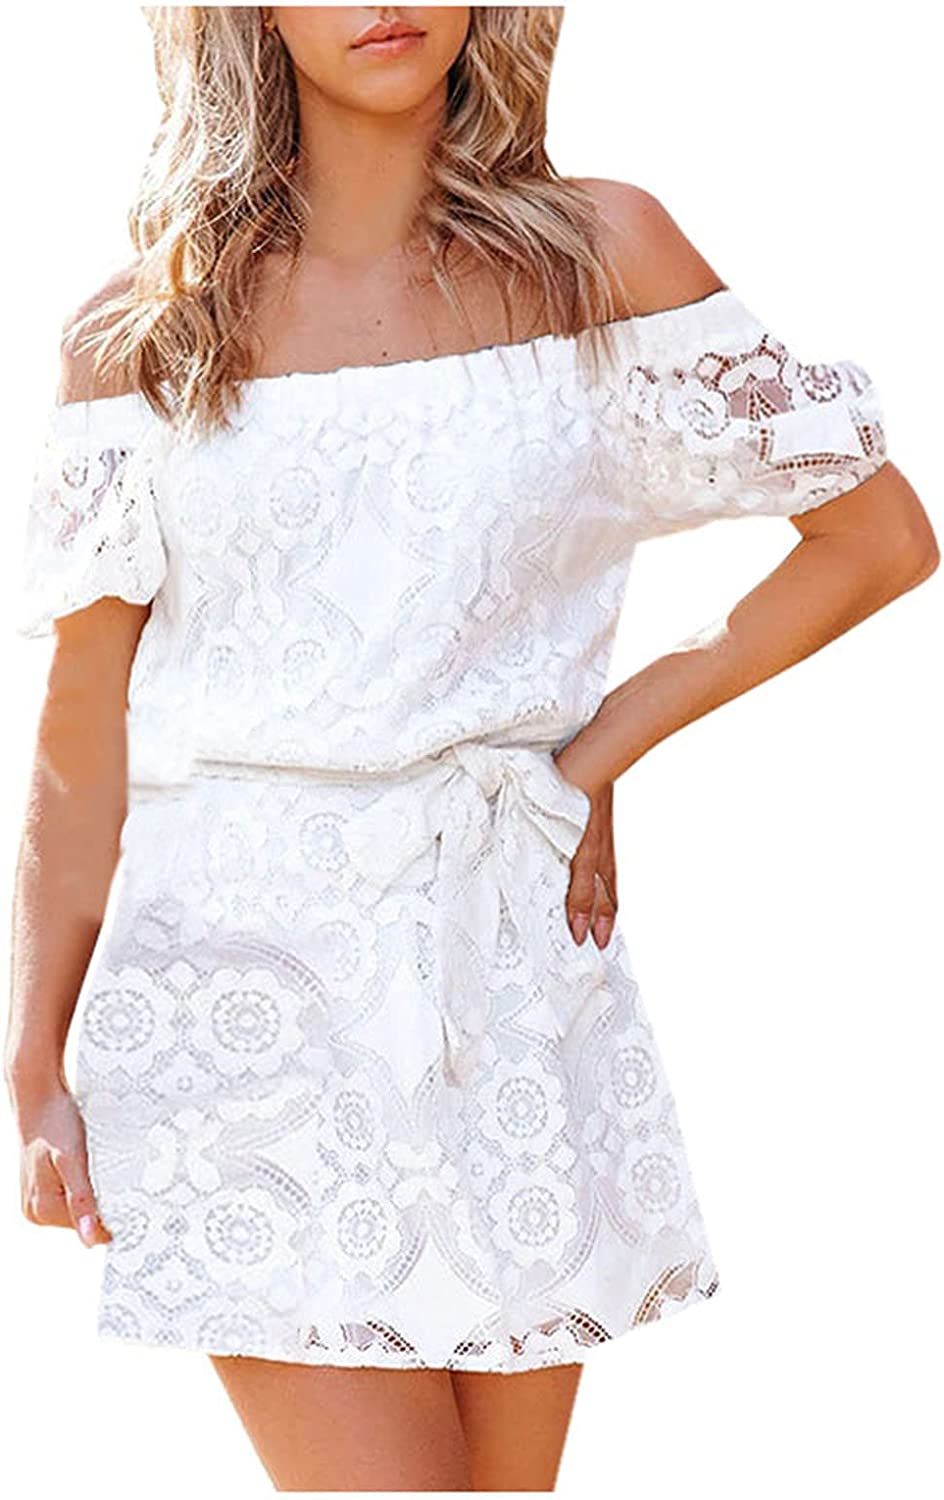 PMUYBHF Women's Off Shoulder Floral Lace Tunic Dresses Tie Waist Hollowed Out Party Mini Dress